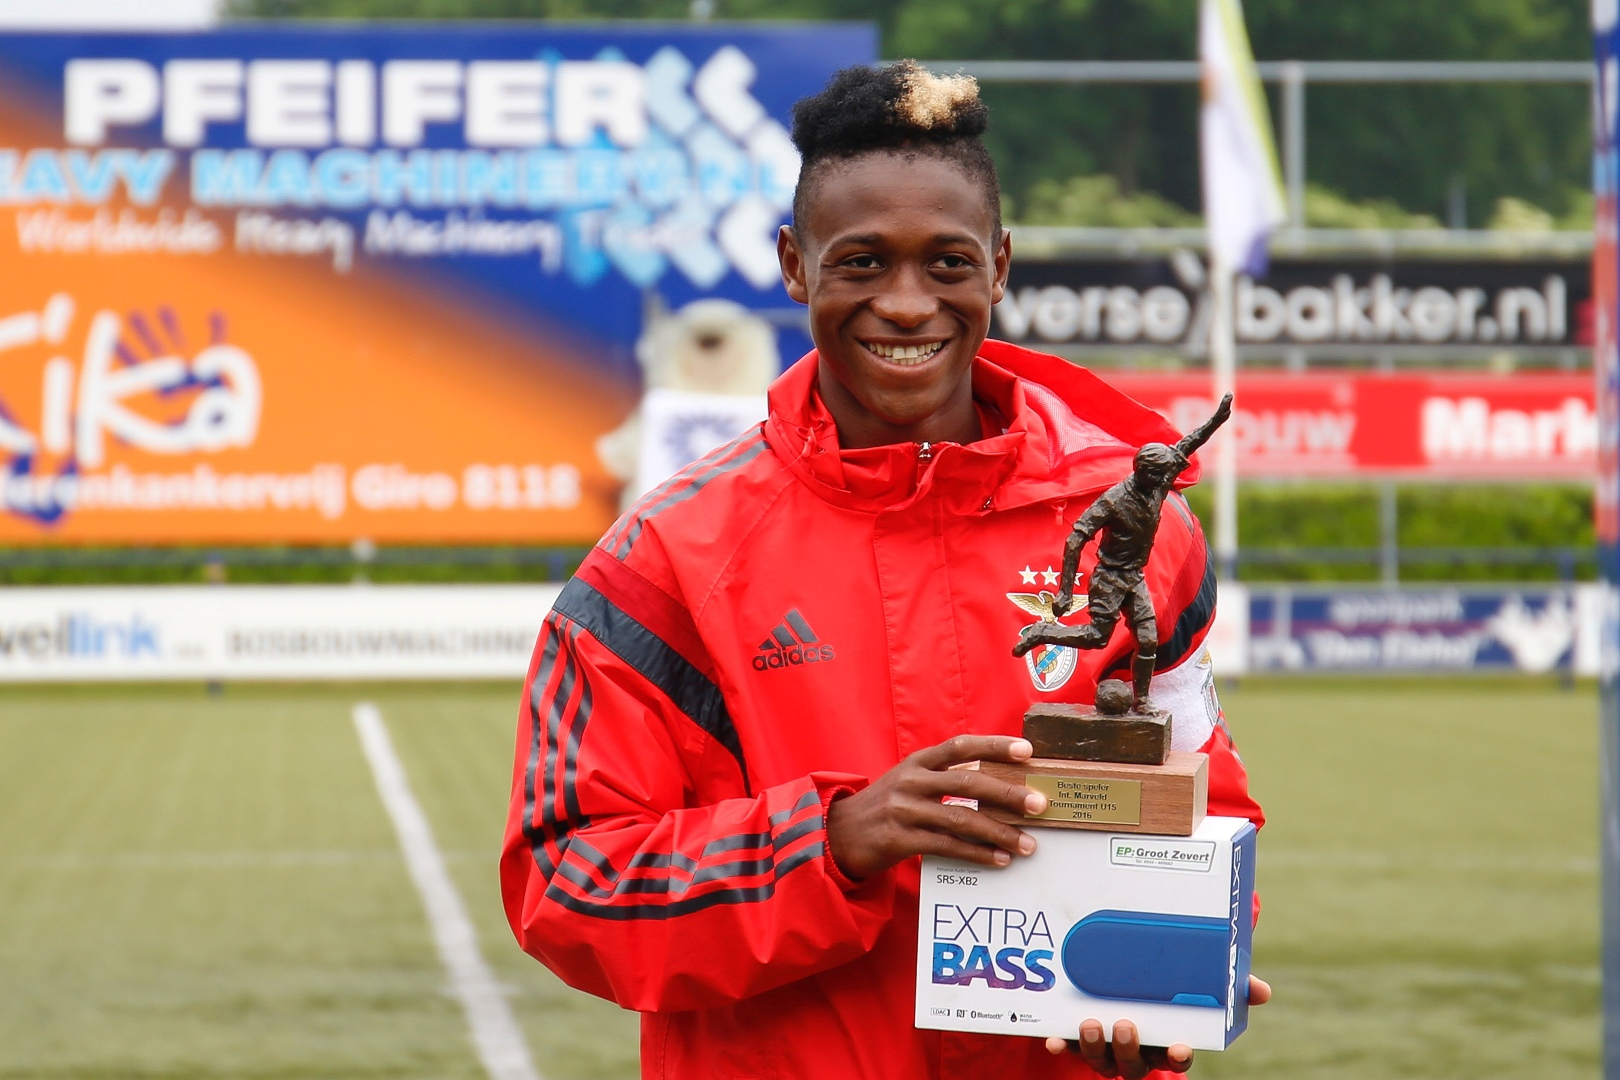 Marveld Tournament 2016 - Best Player Umaro Embalo of SL Benfica